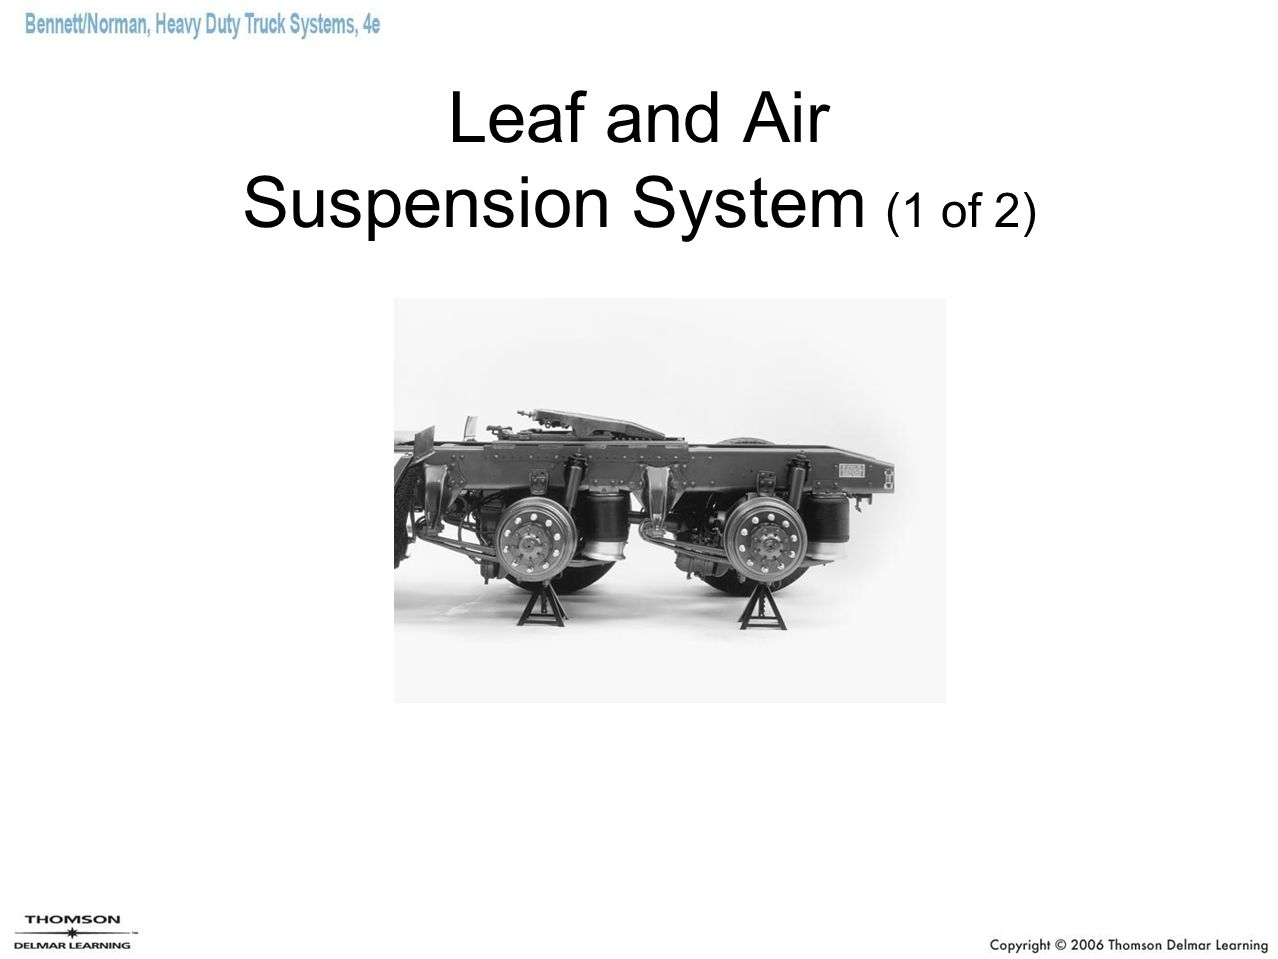 Leaf and Air Suspension System (1 of 2)